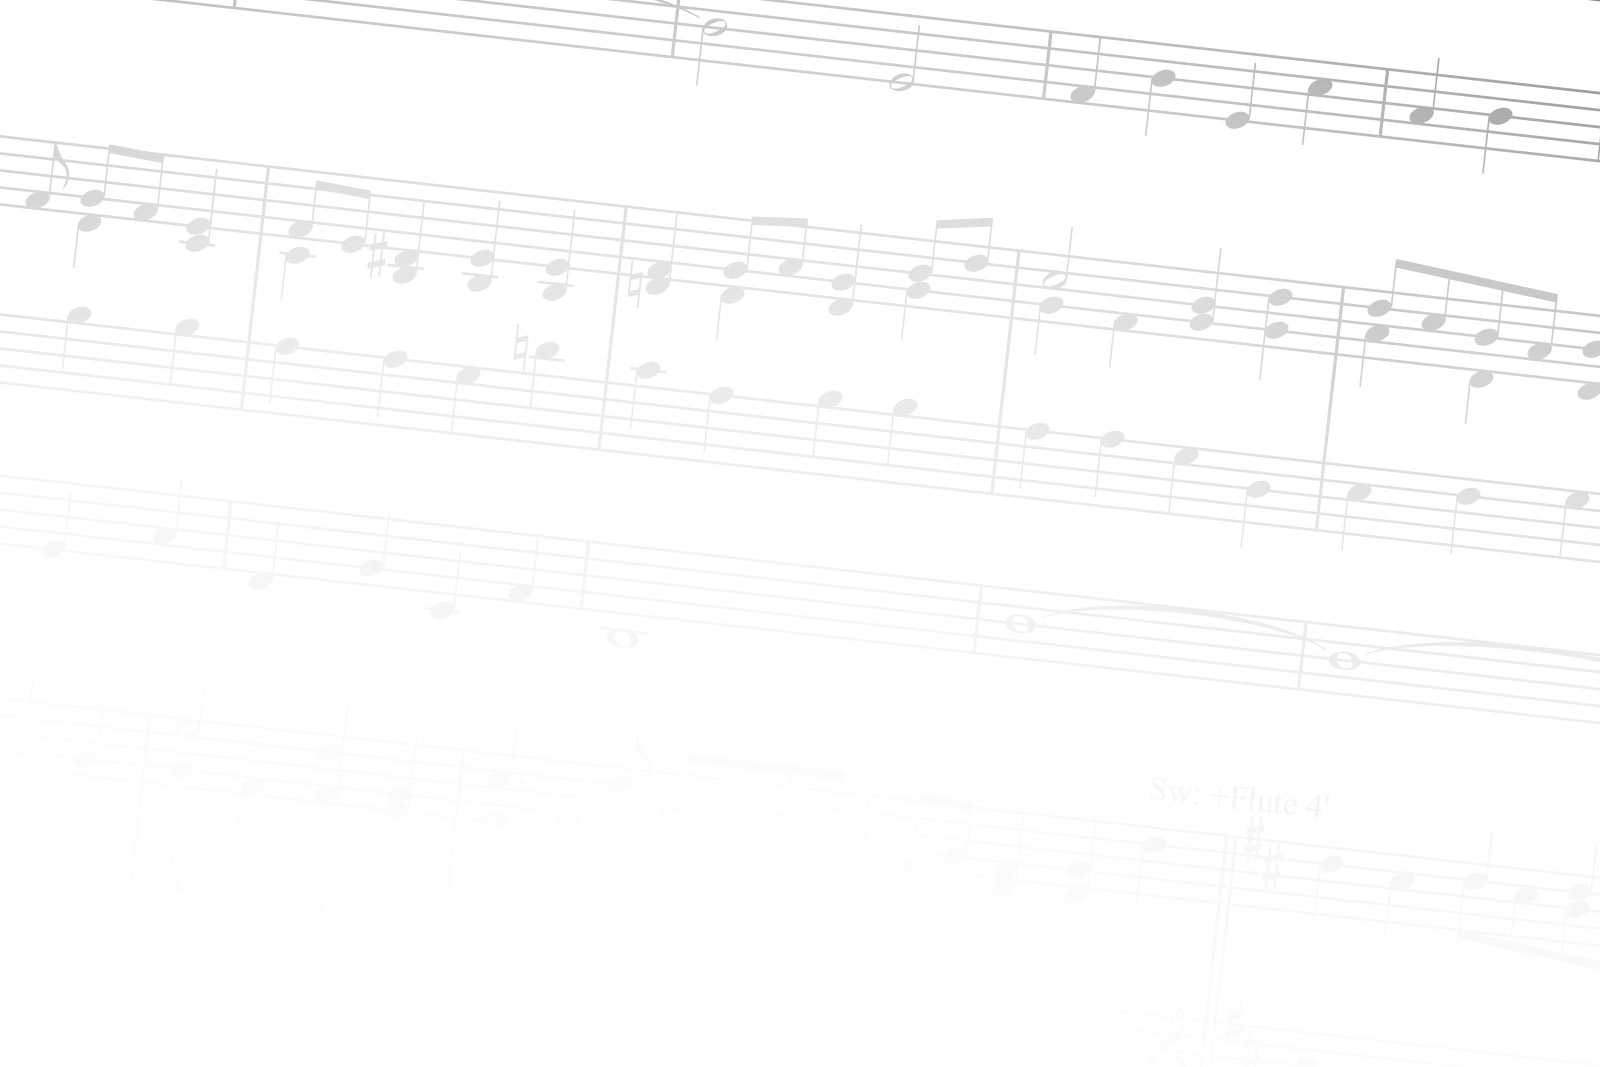 hymn-prelude-background-1.jpg